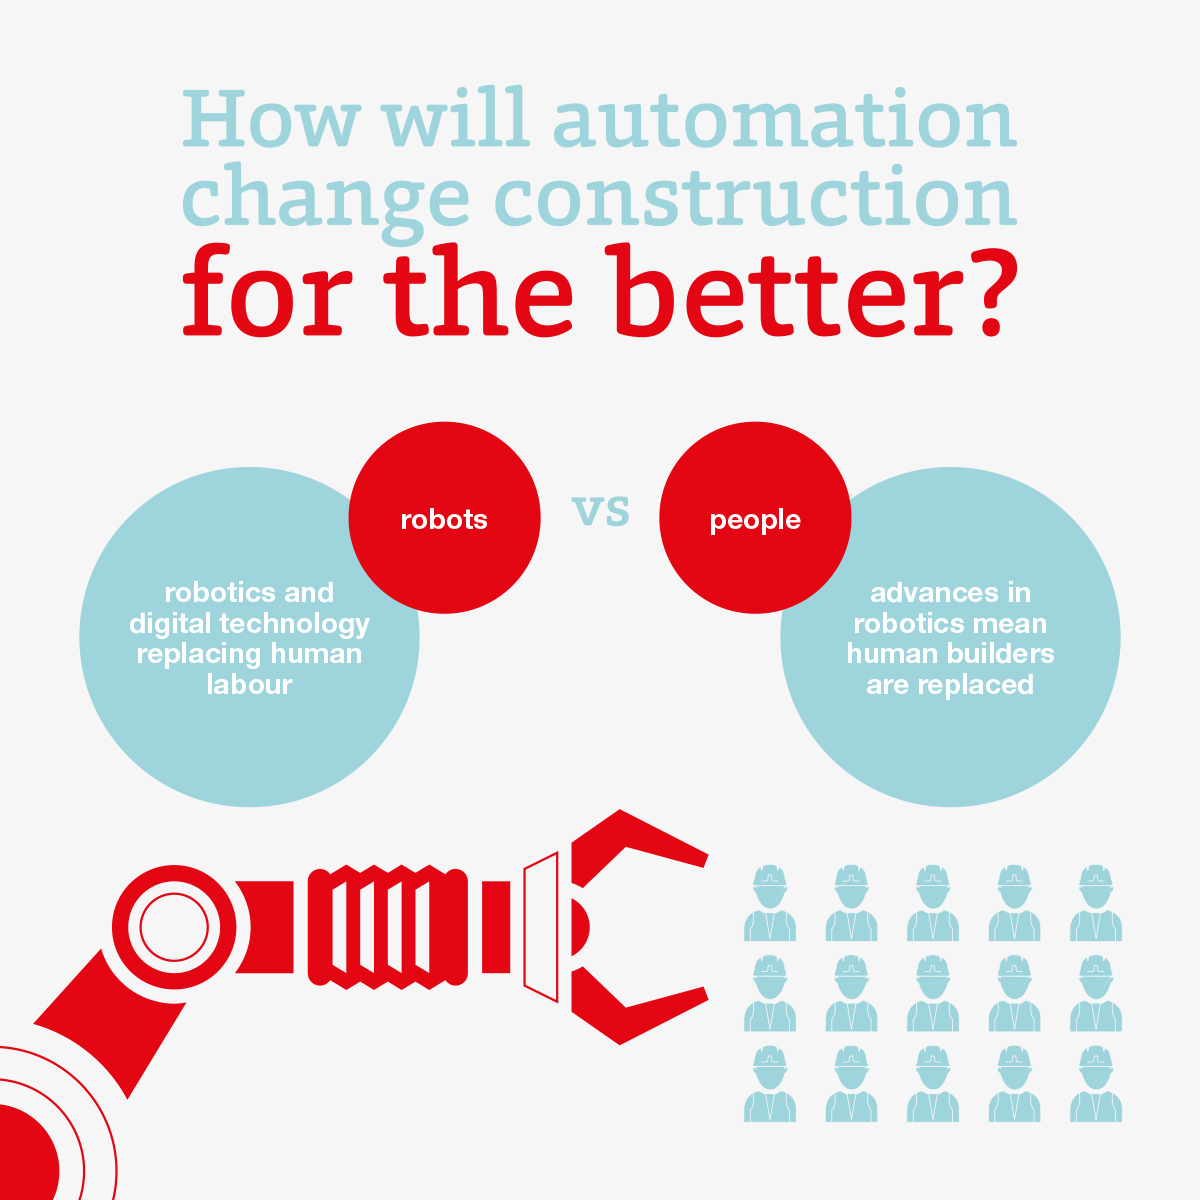 29755  Armorgard Automation Article Graphic ((article page)